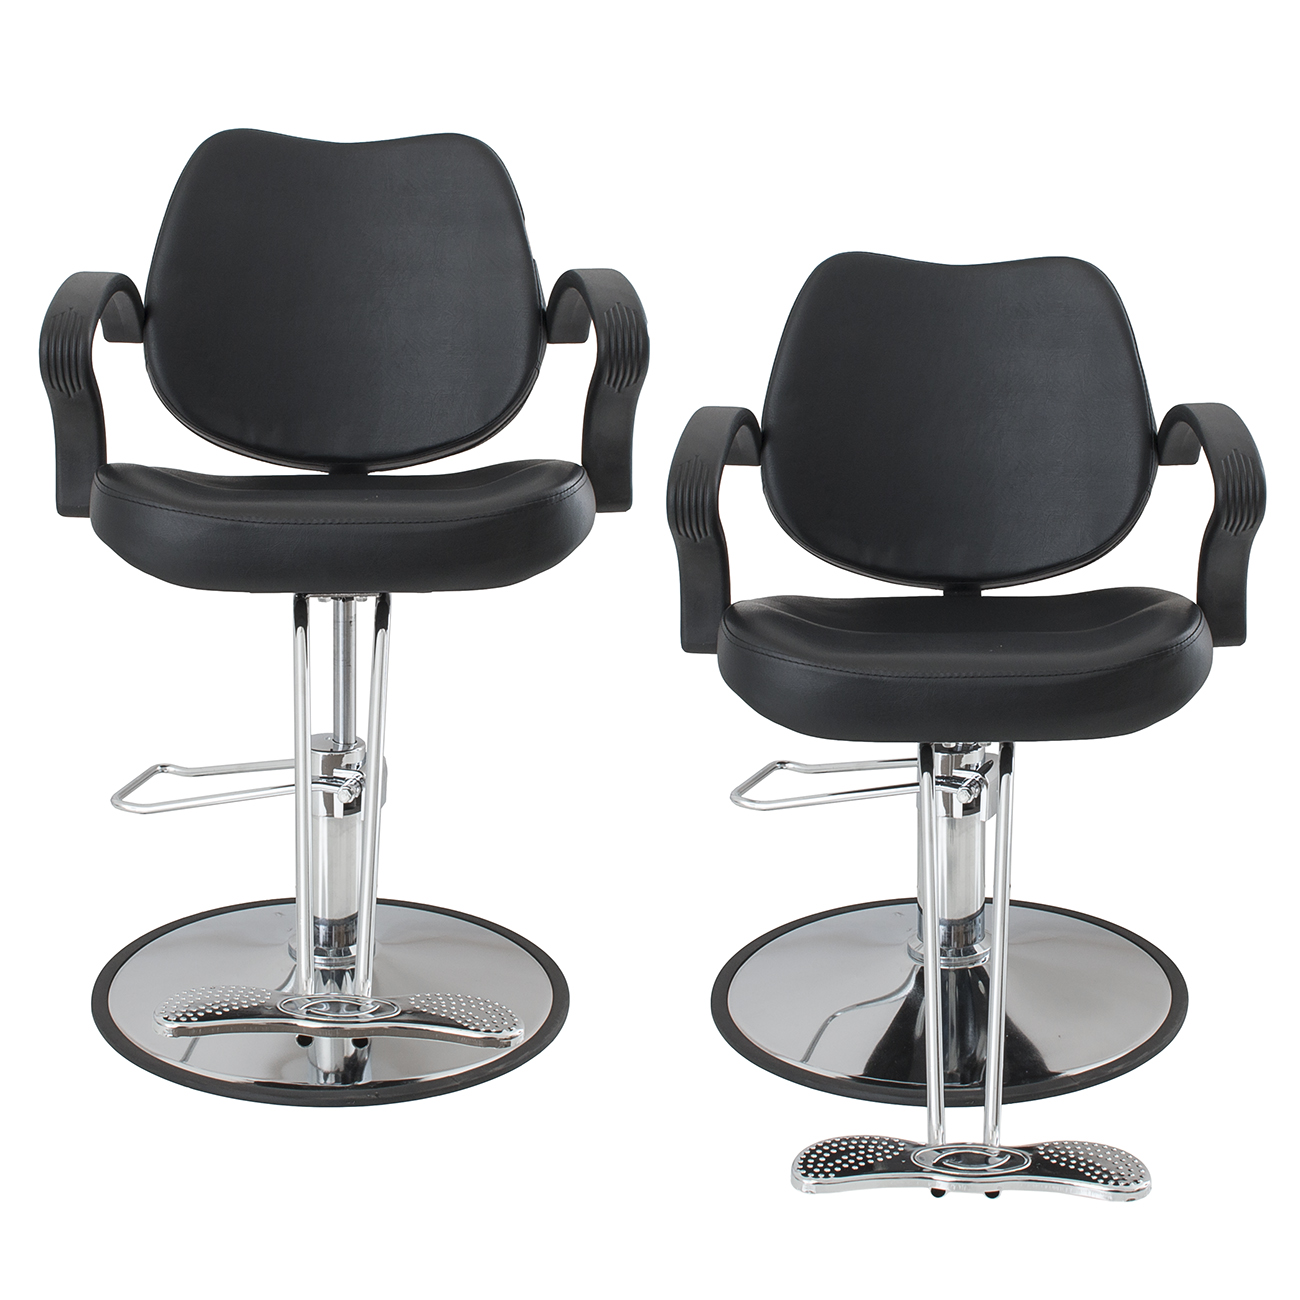 hydraulic hair styling chairs cheap saucer chair classic barber salon beauty spa